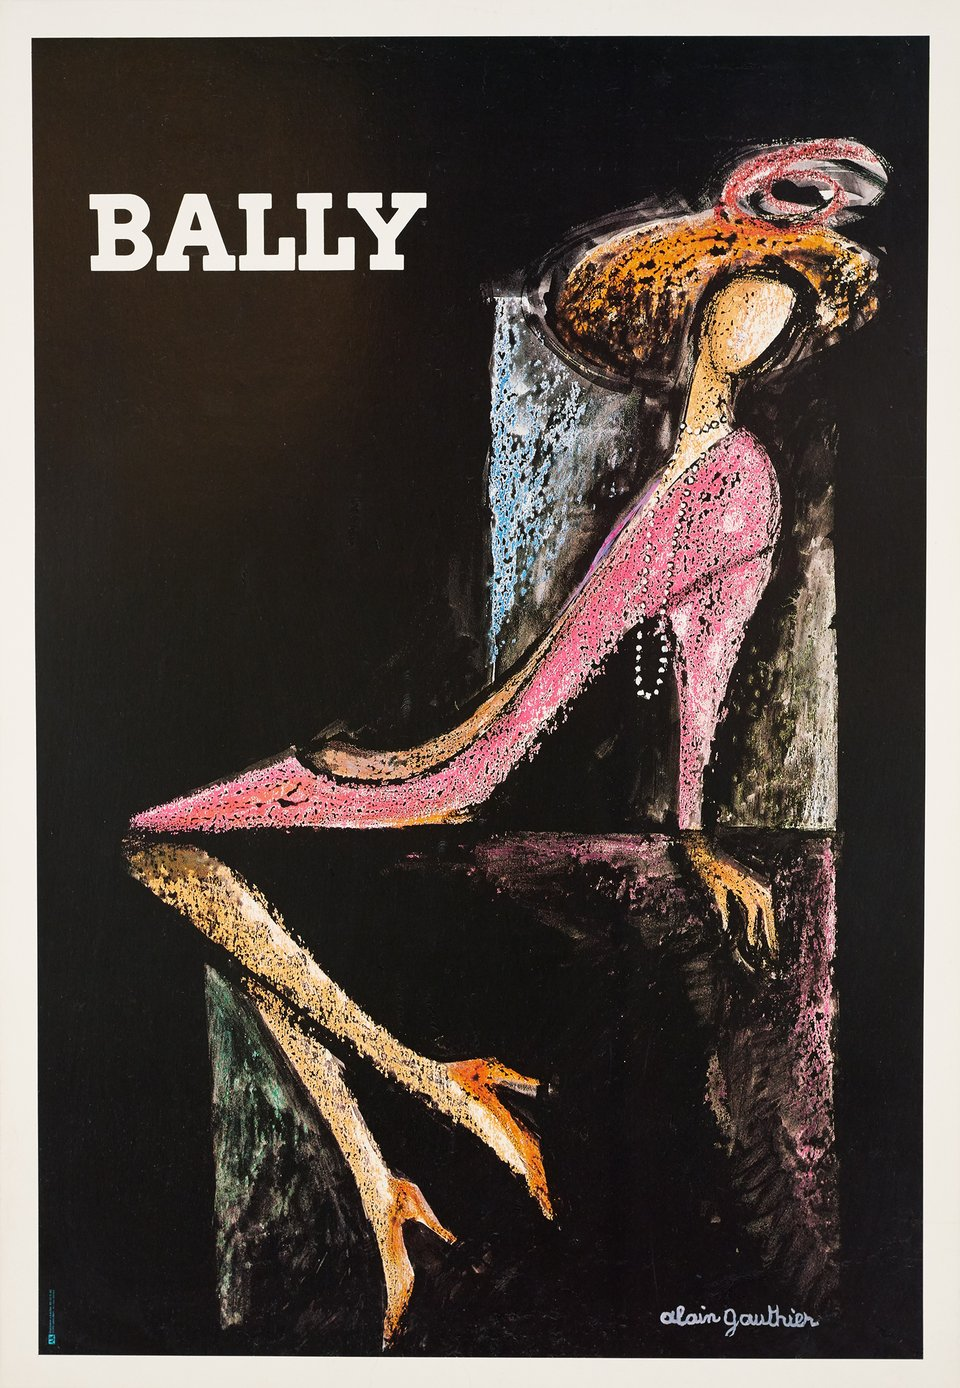 Bally – Affiche ancienne – Alain GAUTHIER – 1970